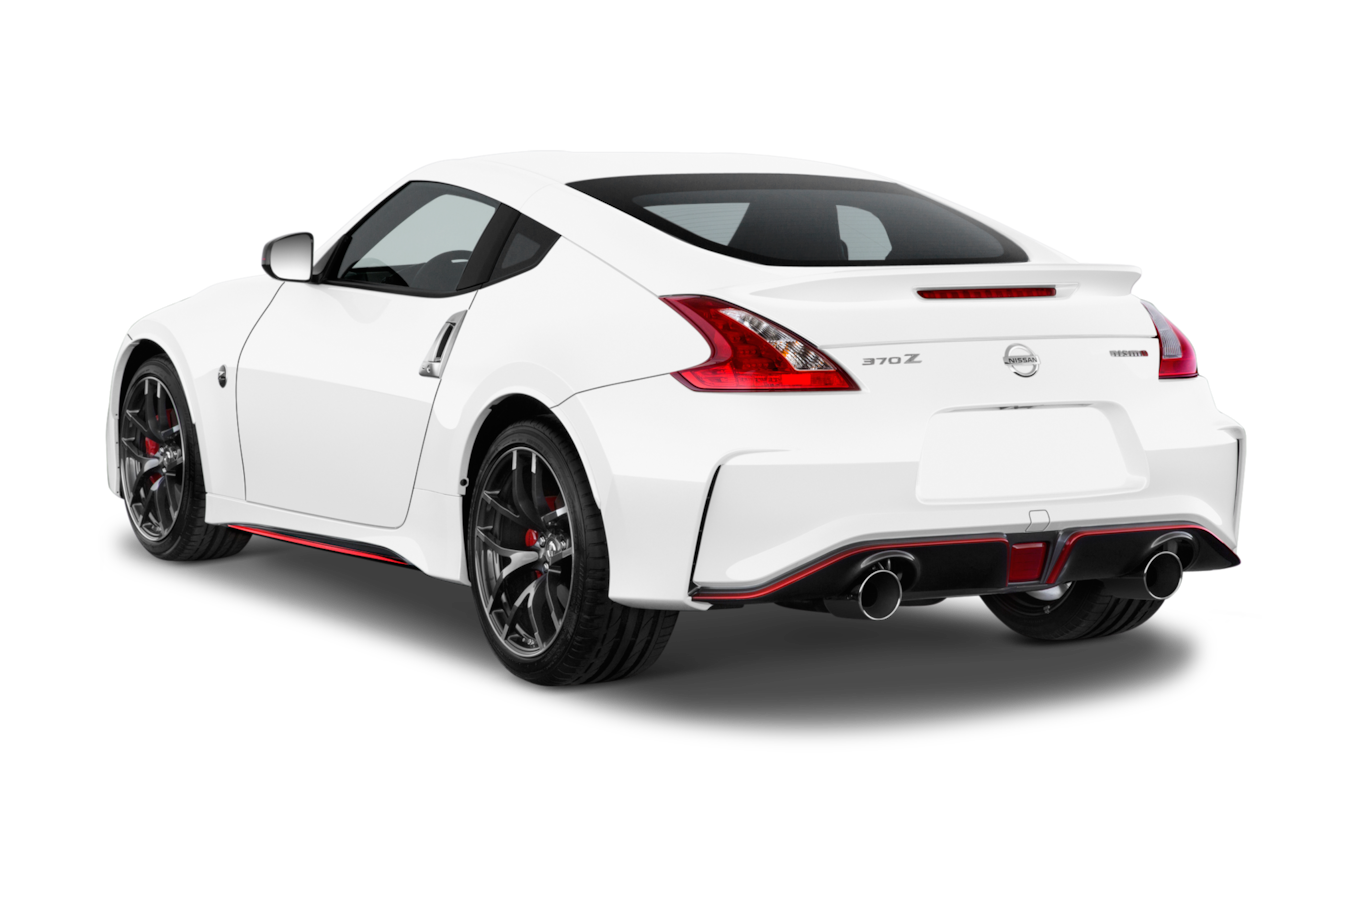 53 All New 2019 Nissan 270Z History